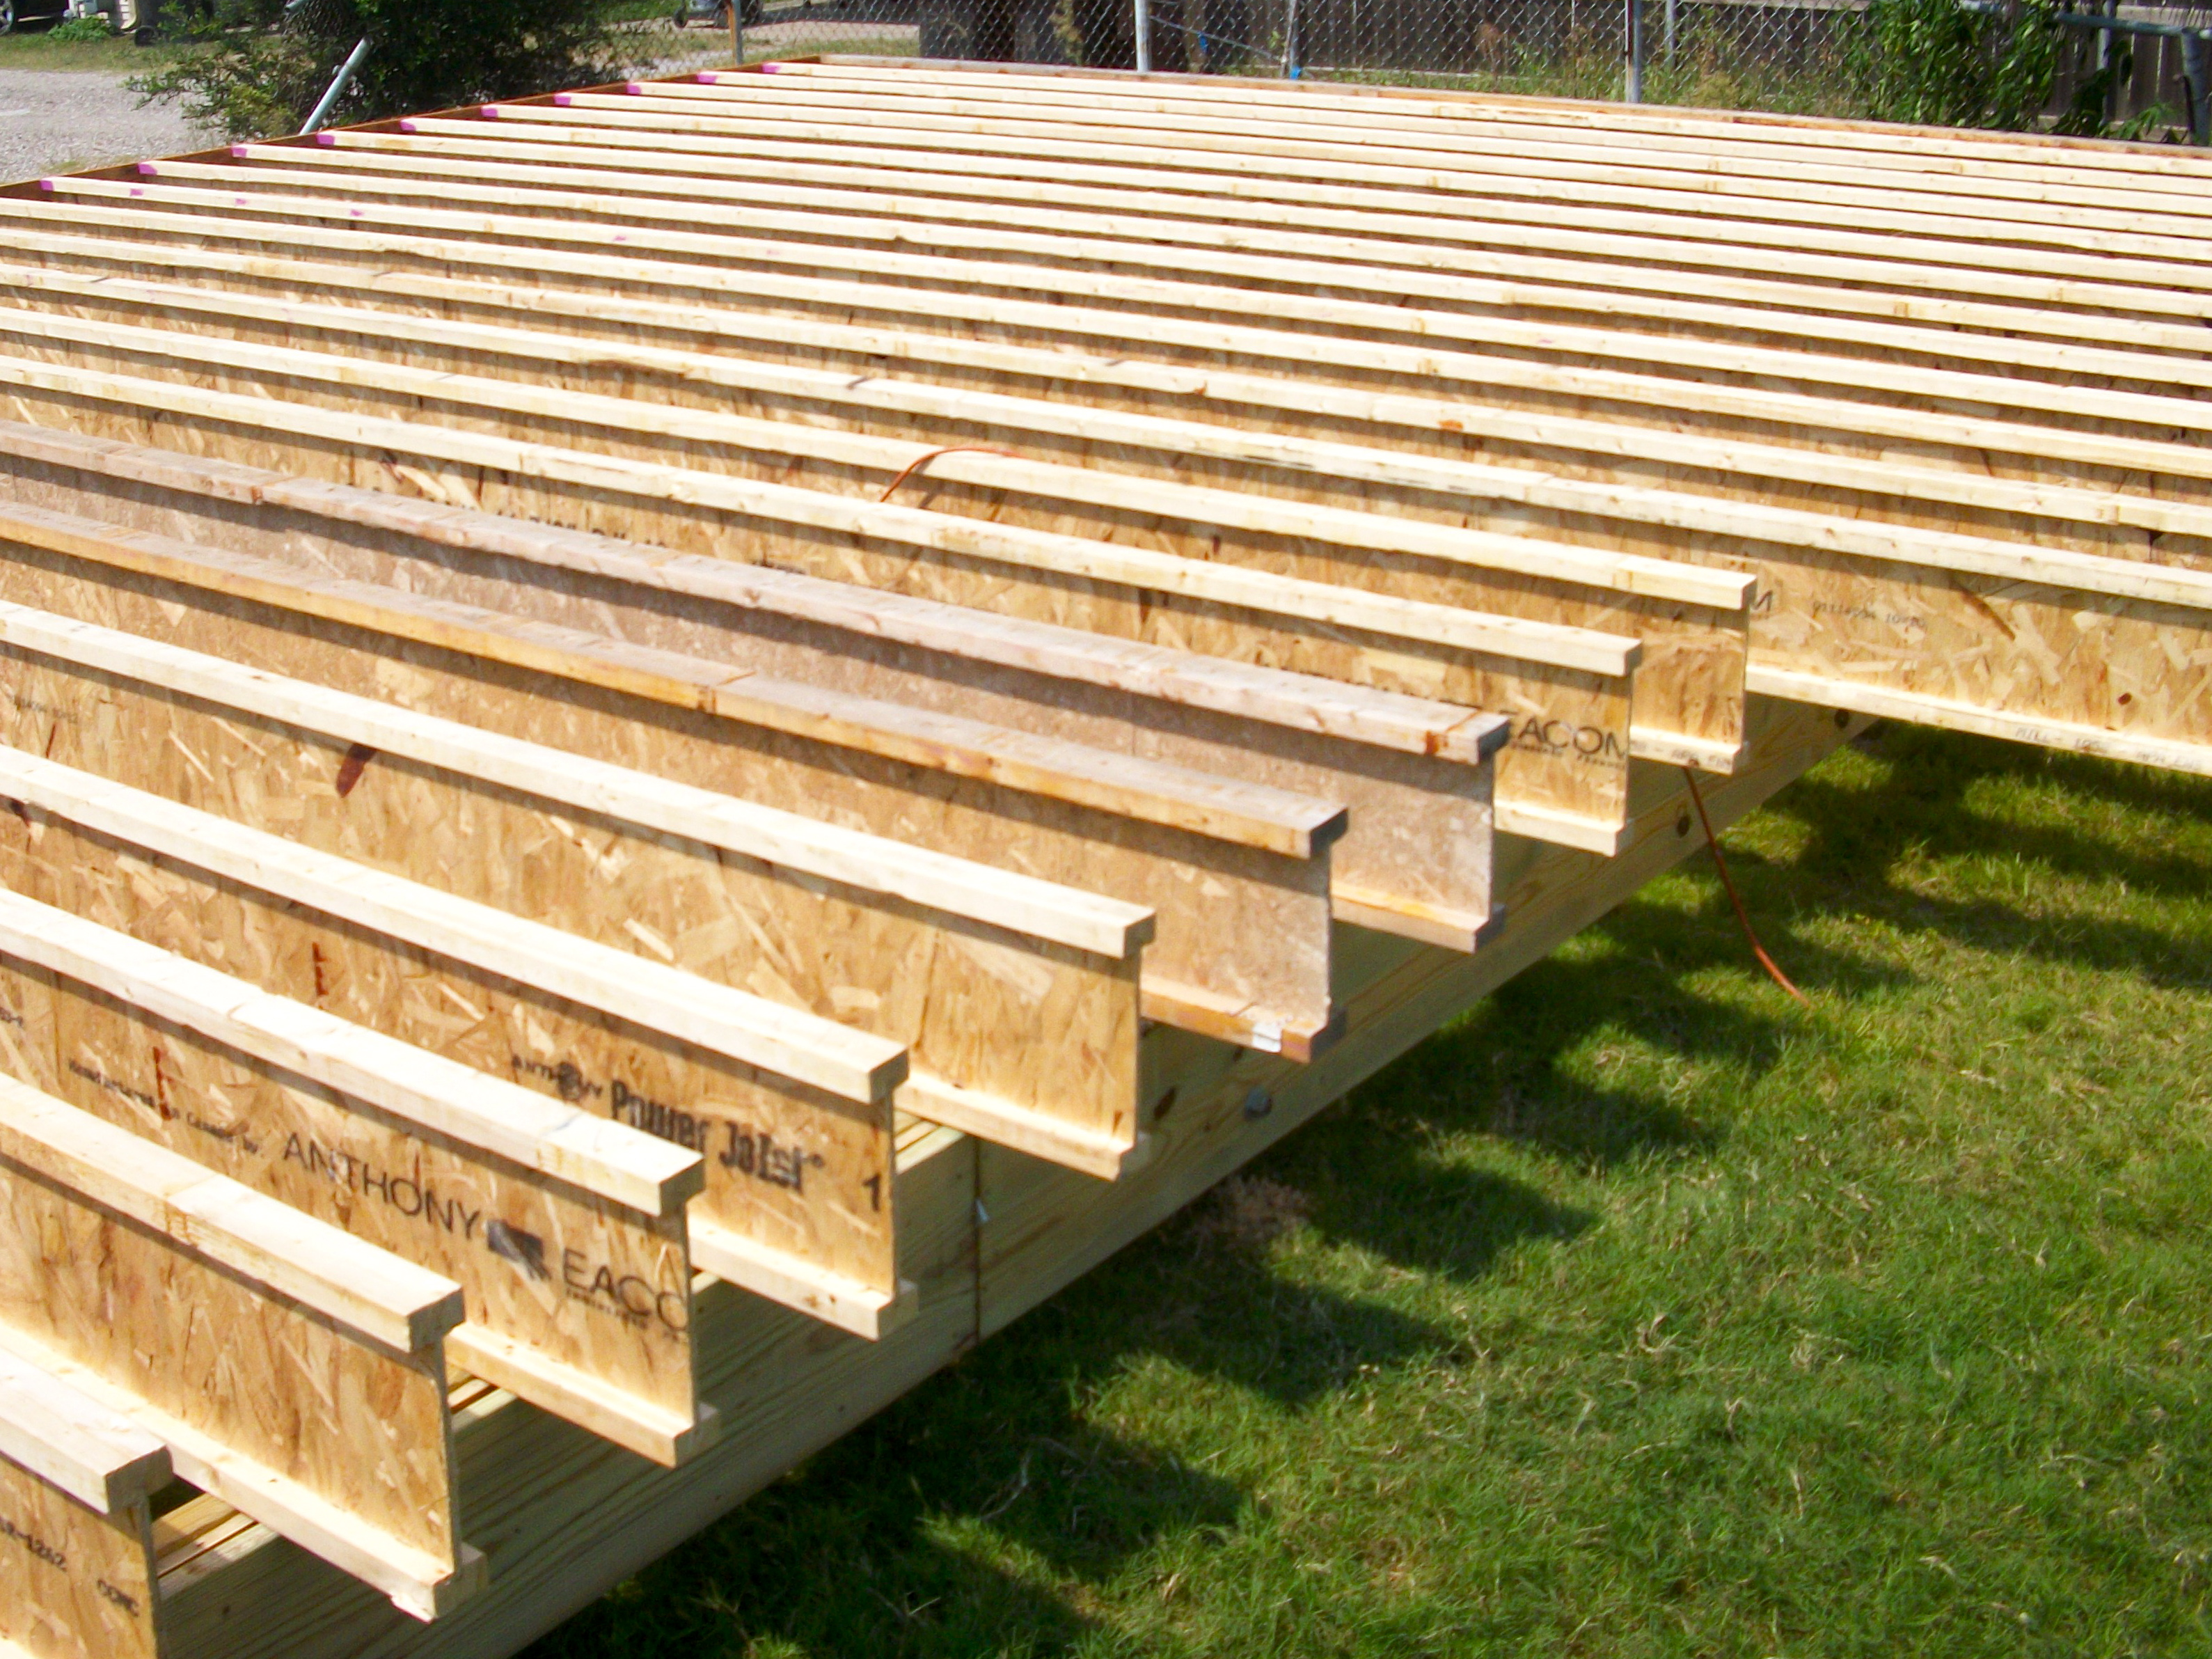 Diy how to build wood i joist download dewalt thickness for Lumber calculator for house